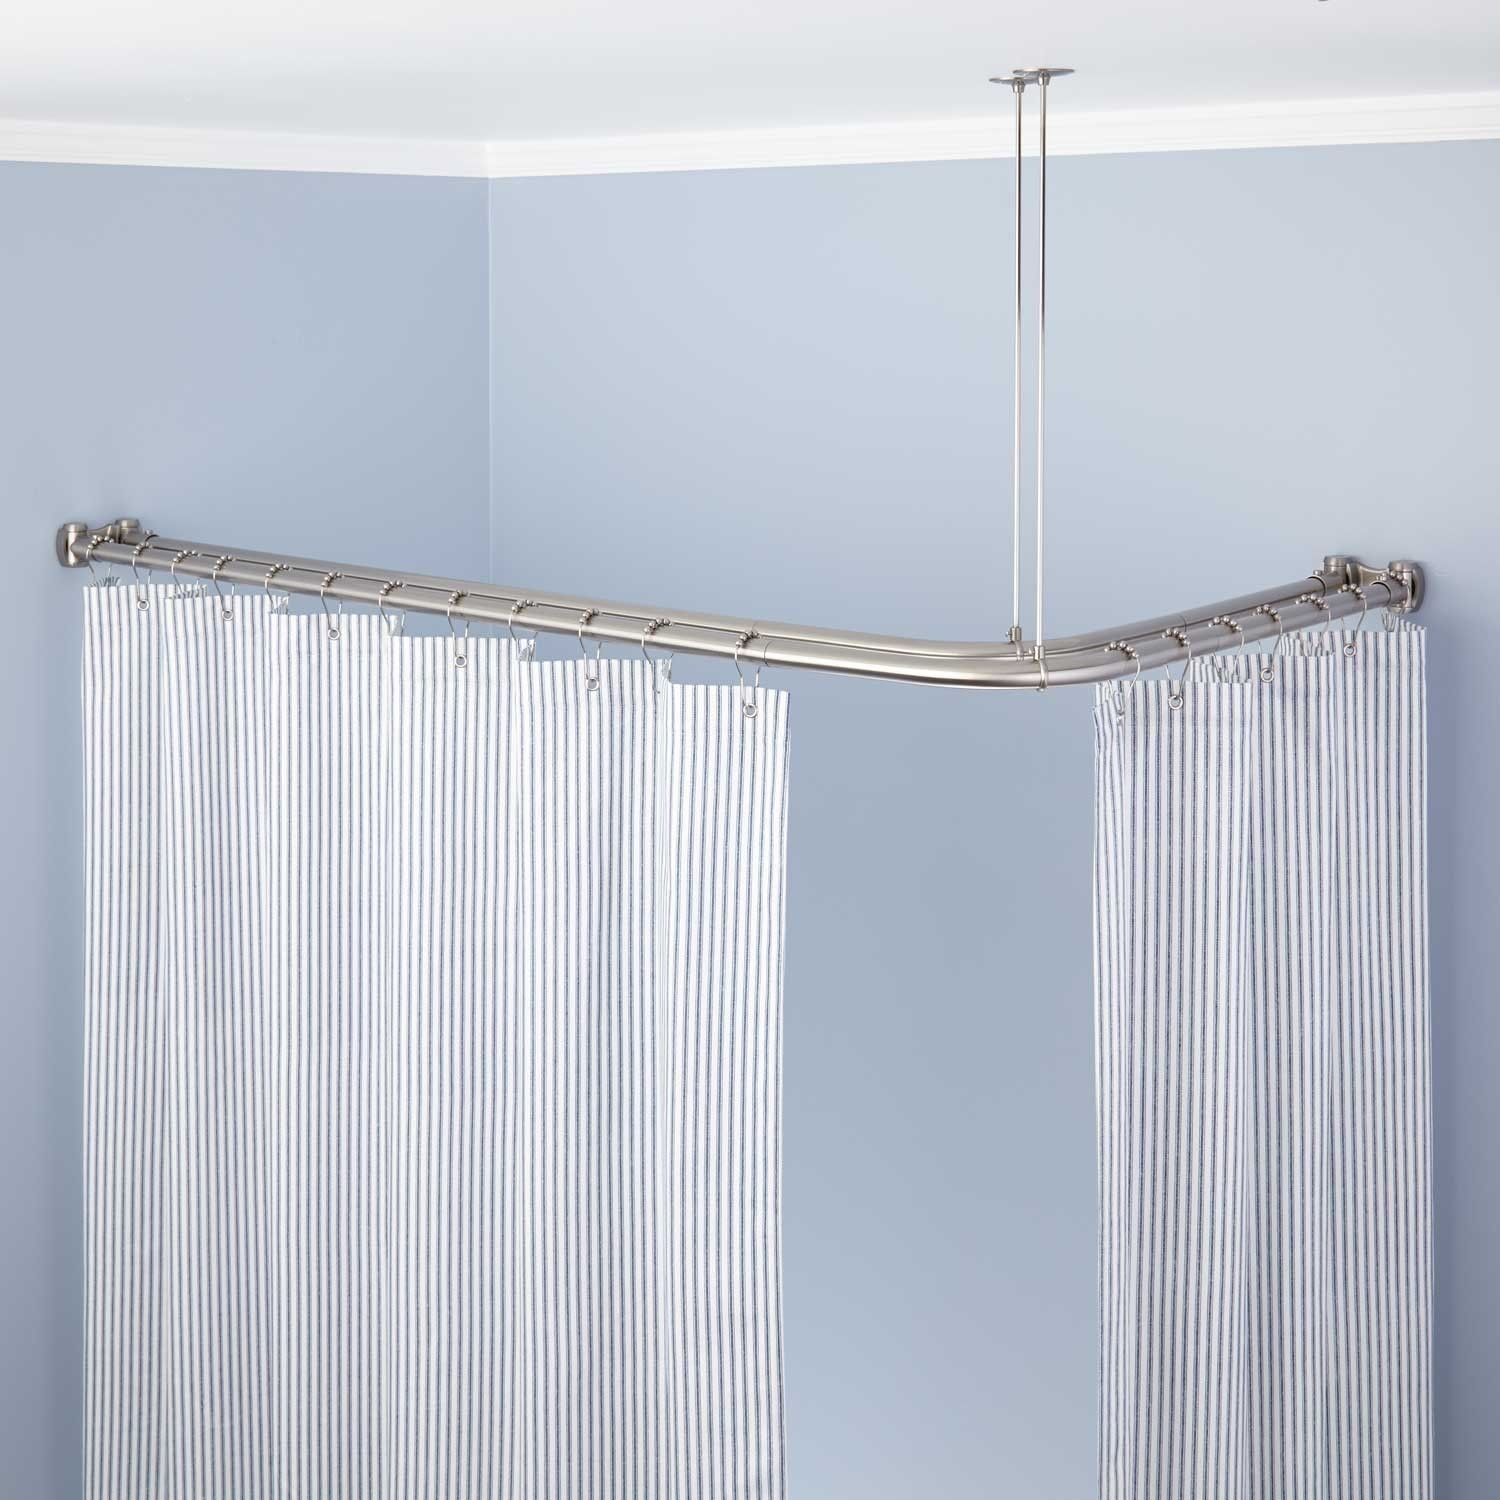 Curtain Rod For Shower Window   http://realtag.info   Pinterest ...